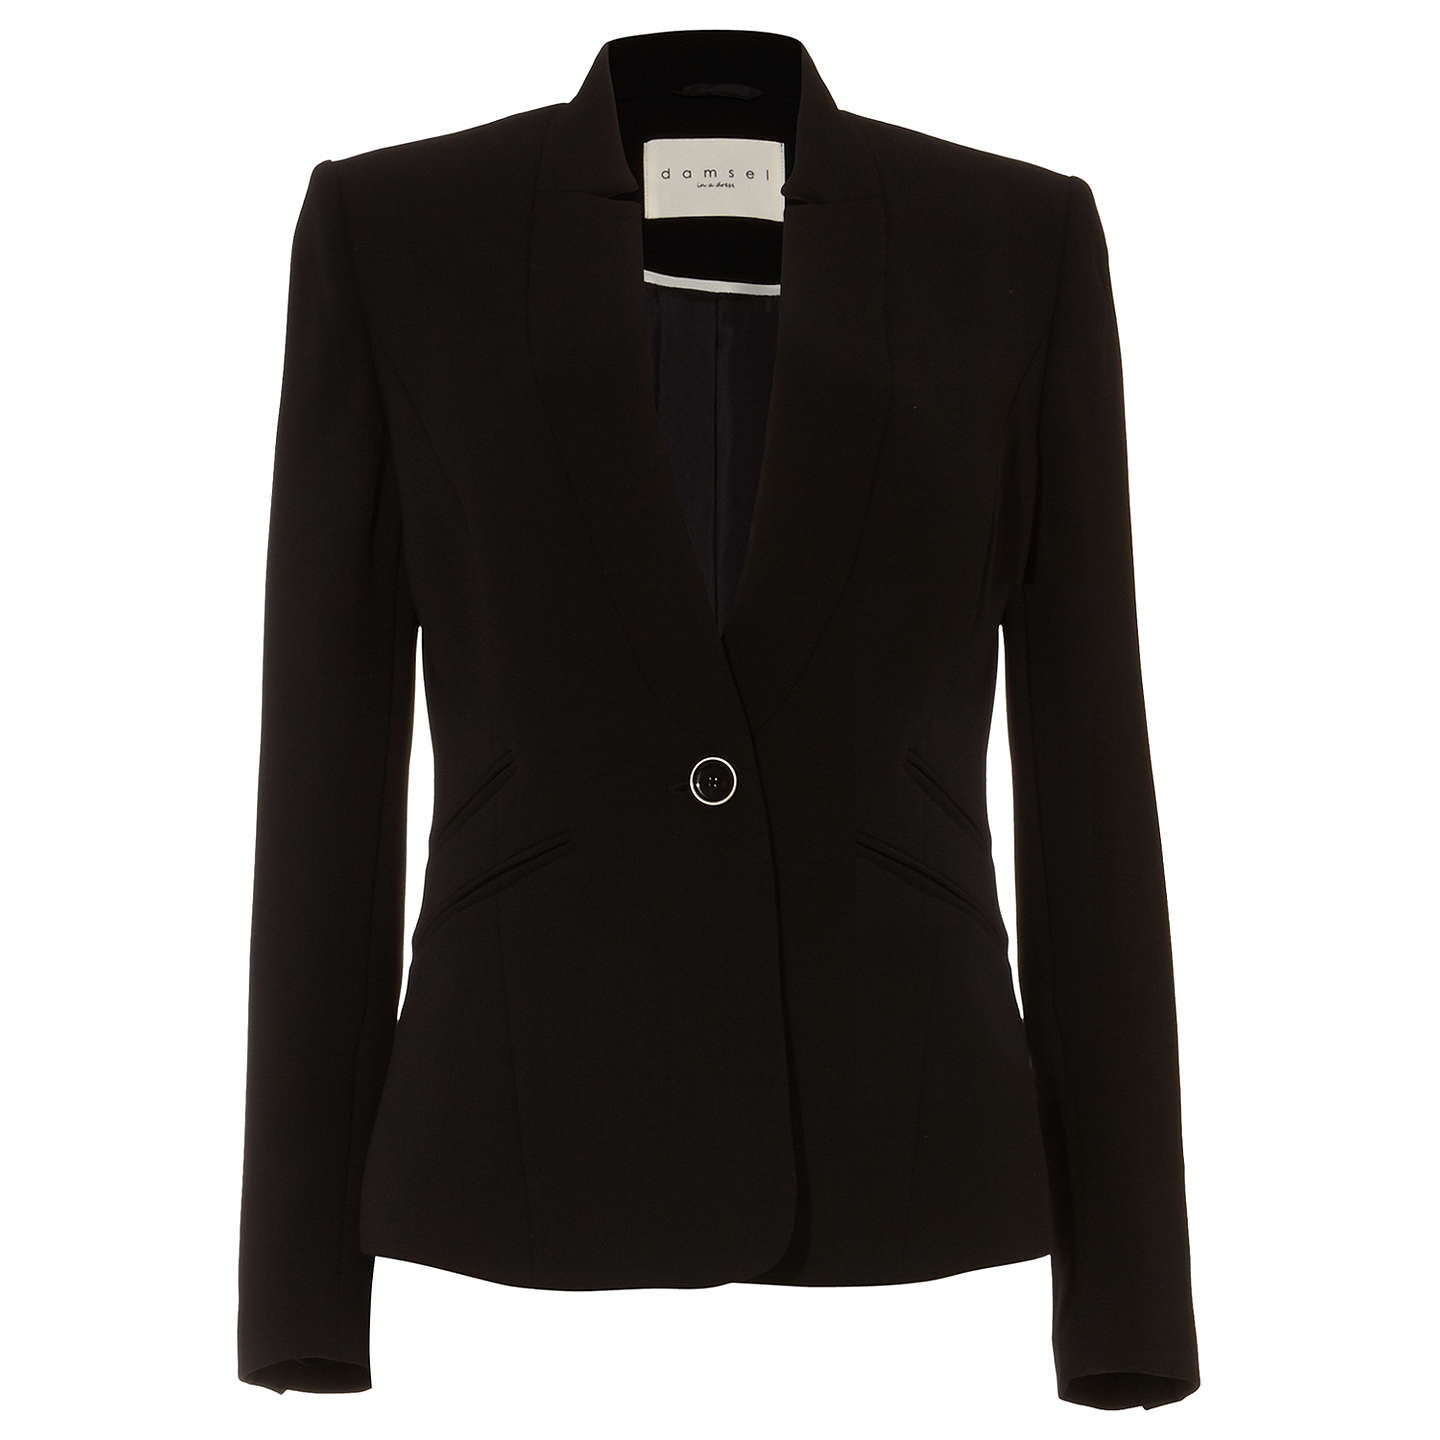 BuyDamsel in a Dress City Suit Jacket, Black, 8 Online at johnlewis.com